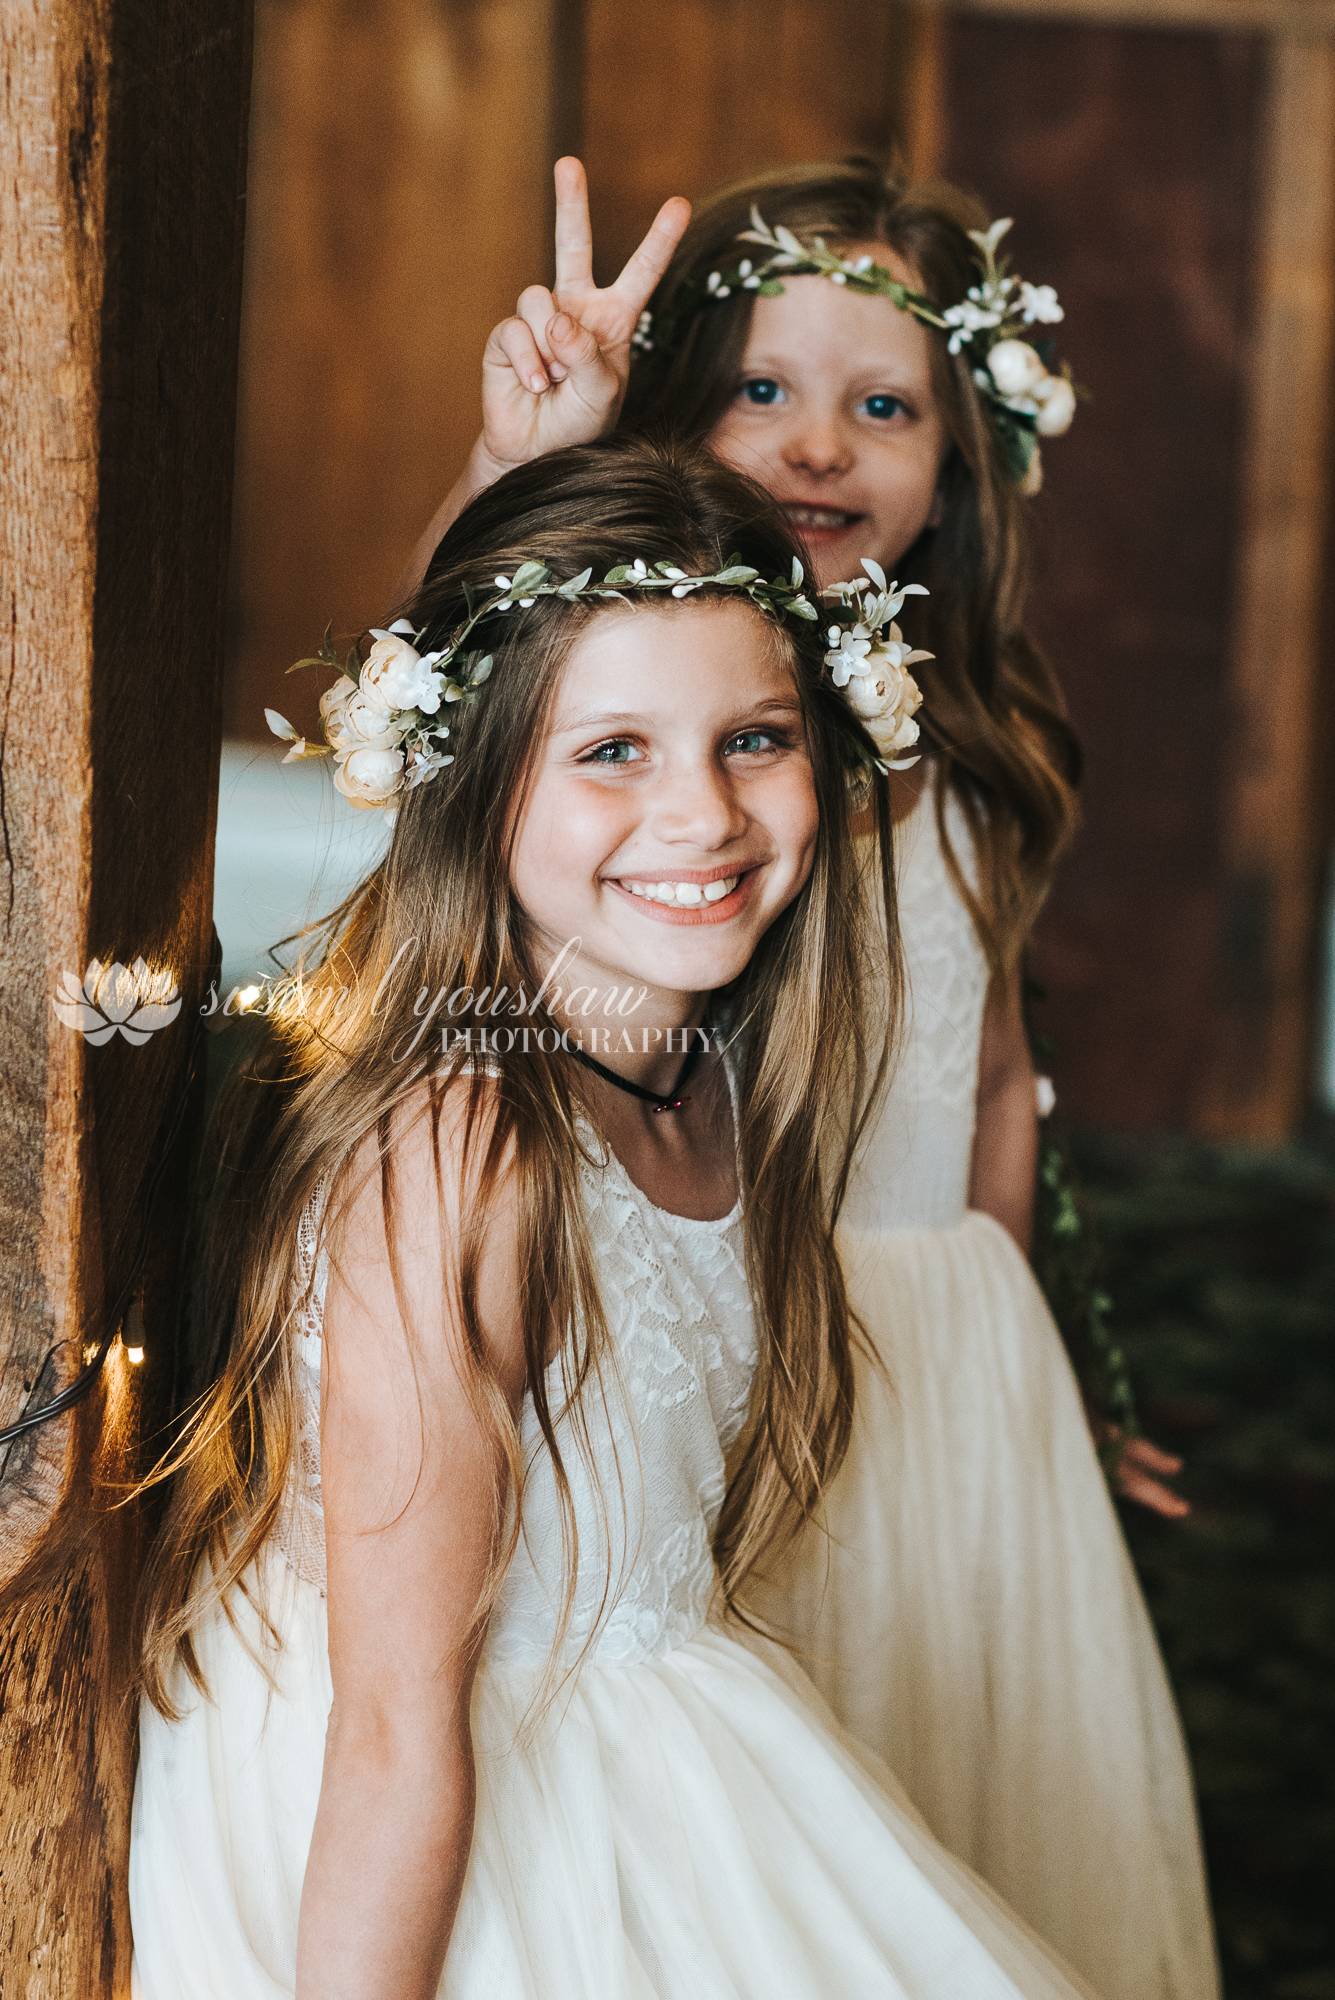 Chynna and John Wedding 05-18-2019 SLY Photography-111.jpg